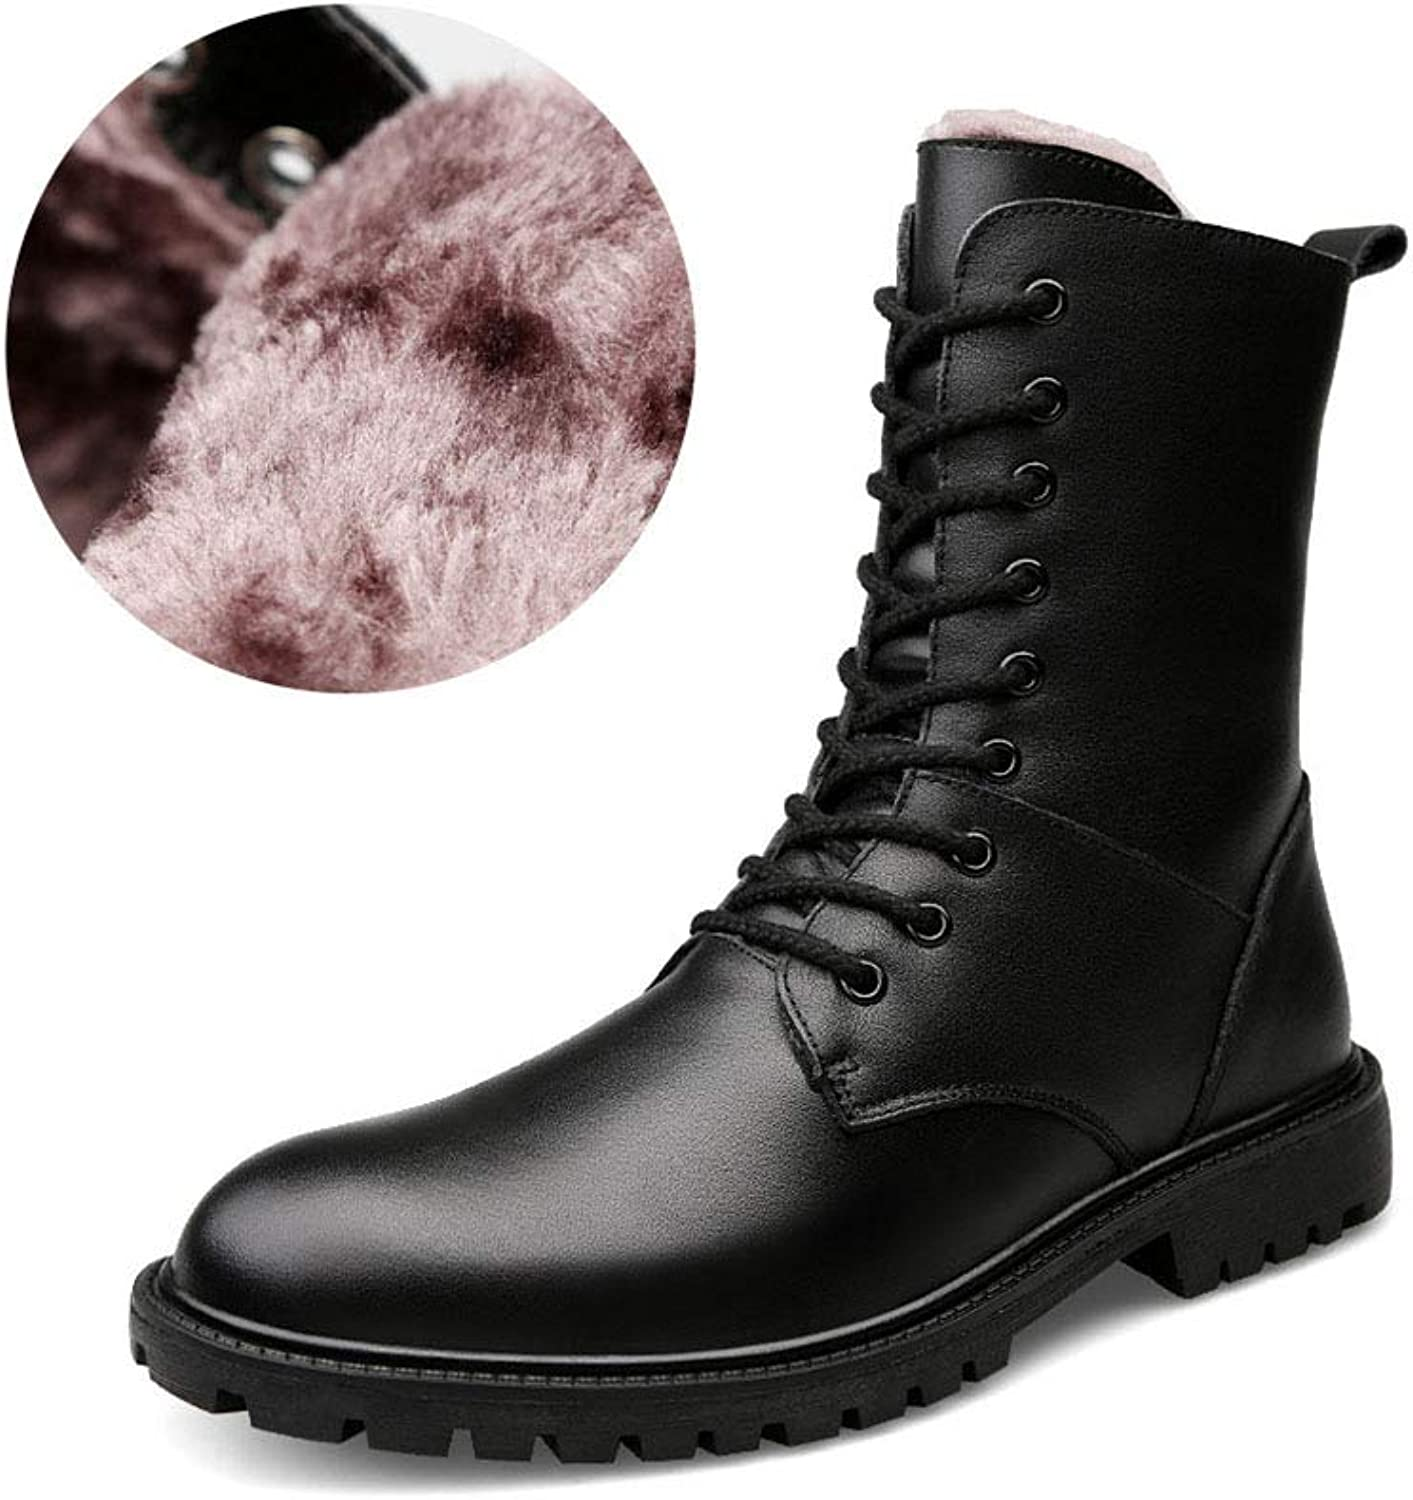 Men's Martin Boots New Fall Winter High-top Plus Velvet Combat Boots Lace-up Non Slip Outdoor Leather Motorcycle Boots (color   Black, Size   45)